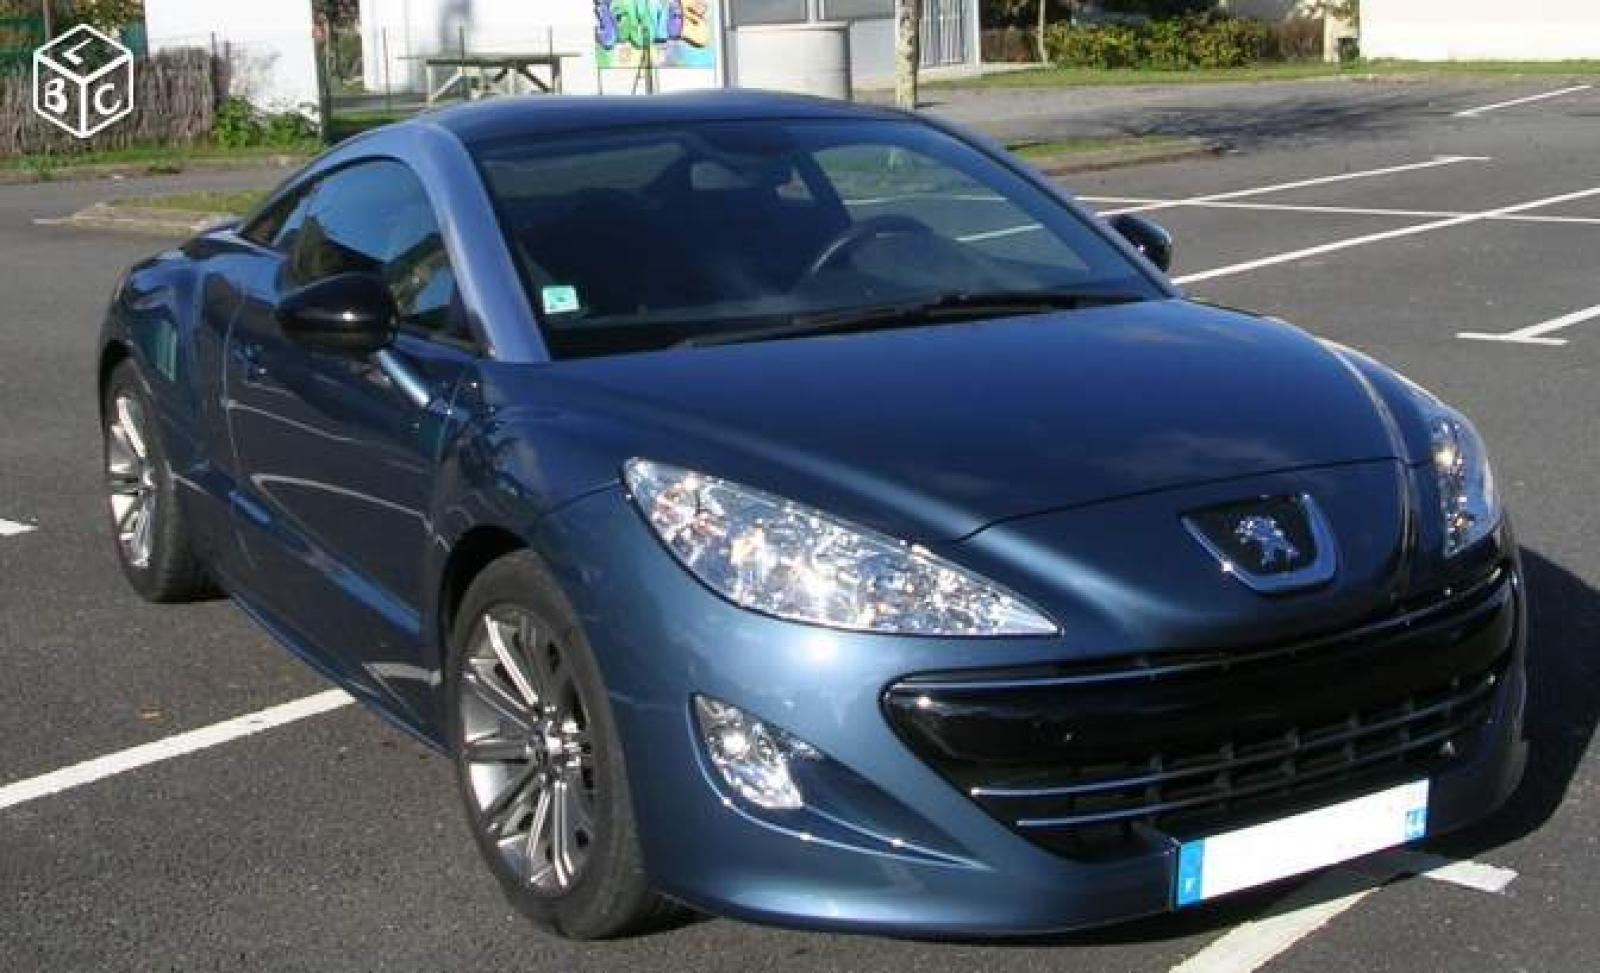 peugeot rcz bleue tuanake d 39 occasion voiture neuve et d. Black Bedroom Furniture Sets. Home Design Ideas